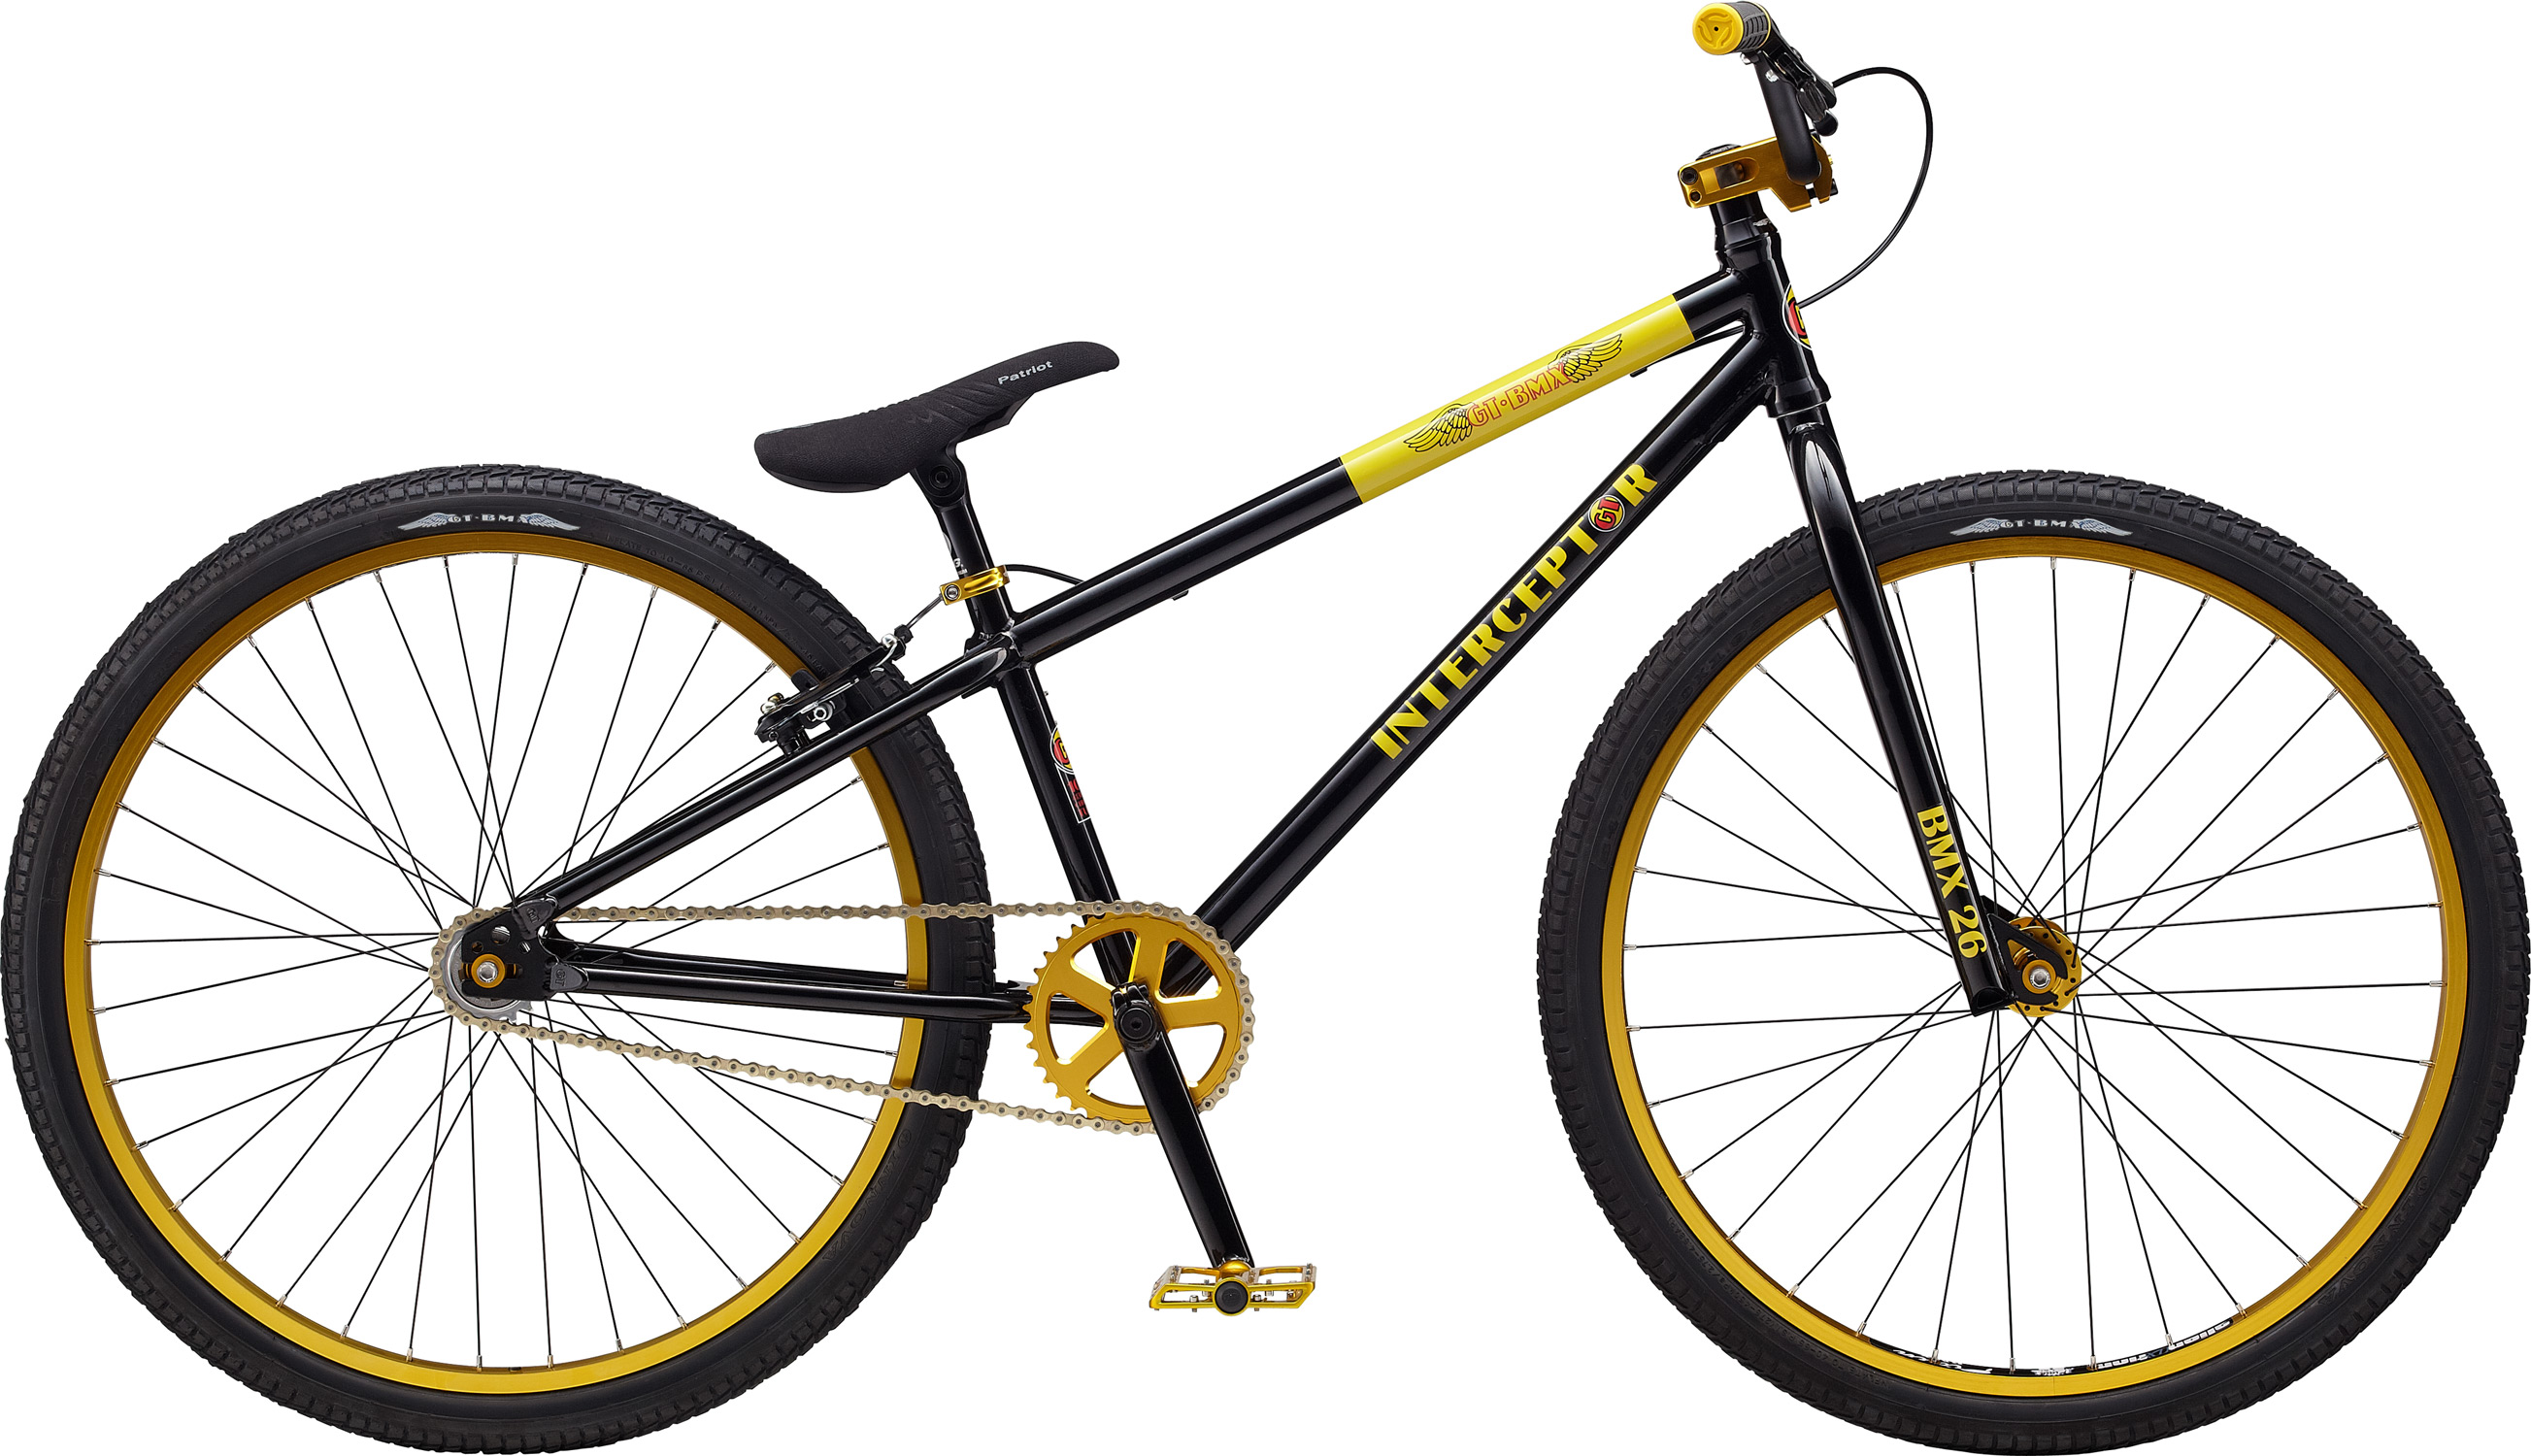 "BMX Key Features of the GT Interceptor BMX Bike 26"": Frame: NEW Butted, 100% Cro-Mo, (DT) Fork: GT, 100% Cro-Mo, Butted Steerer, Butted 31.8-28.6 Butted, Taper Blades, 3/8, 1 1/8"" Crankset: GT 3 Pcs Cro-Mo, 16T, 175mm Al 36T Wheels/Hubs: GT Mohawk AL Sealed 32F, 36R Brakes: Promax MV-295L - $421.95"